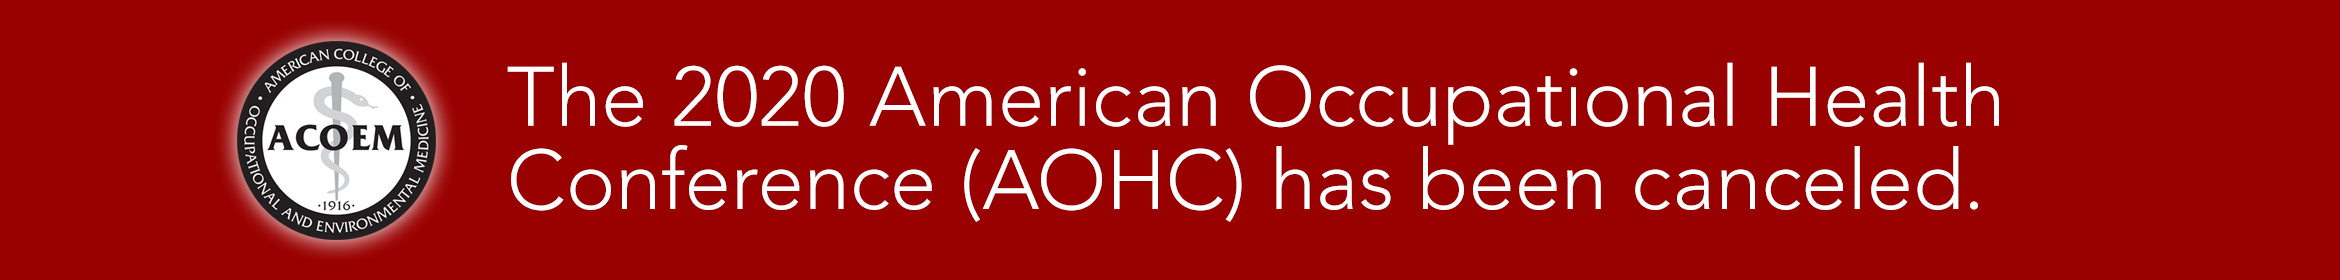 AOHC 2020 Main banner